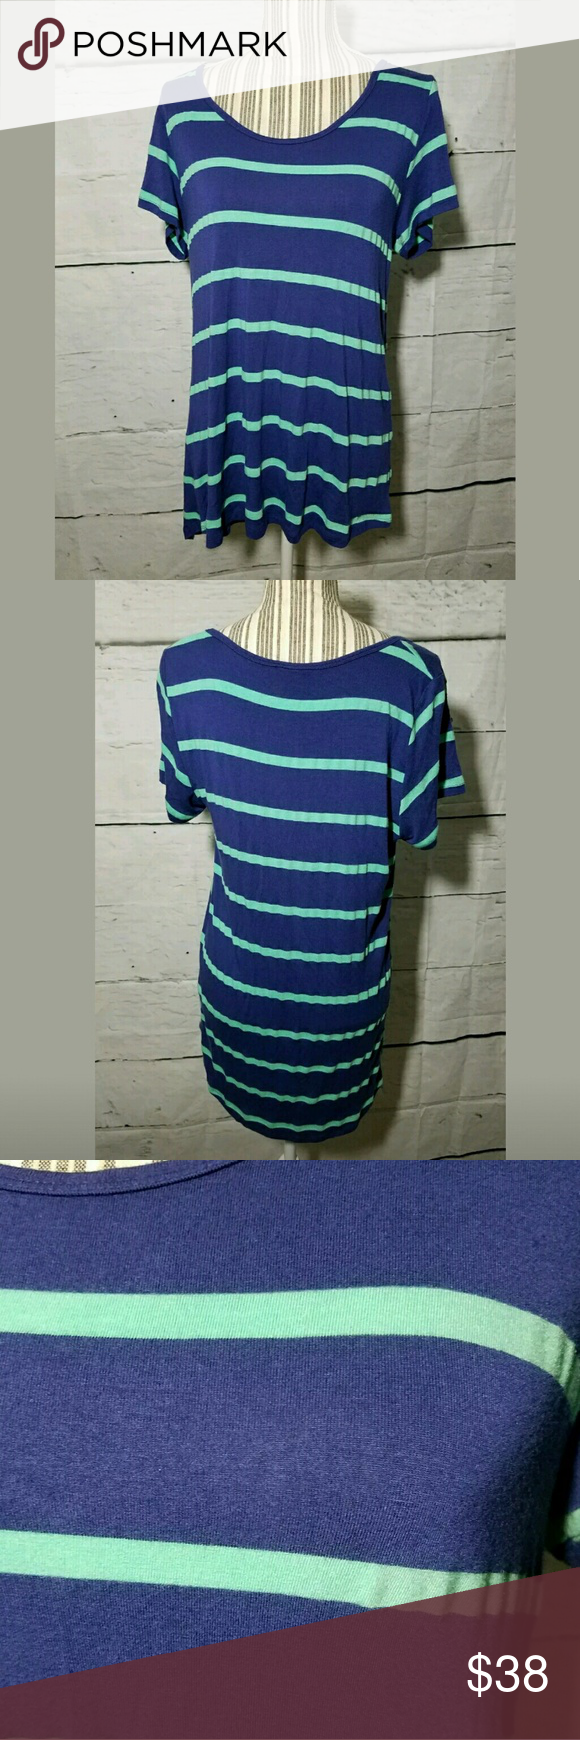 Lularoe Striped Classic Tee Tshirt Excellent used condition. No holes or stains.   20.5 inches pit to pit.  31 inches long in front.   AB LuLaRoe Tops Tees - Short Sleeve